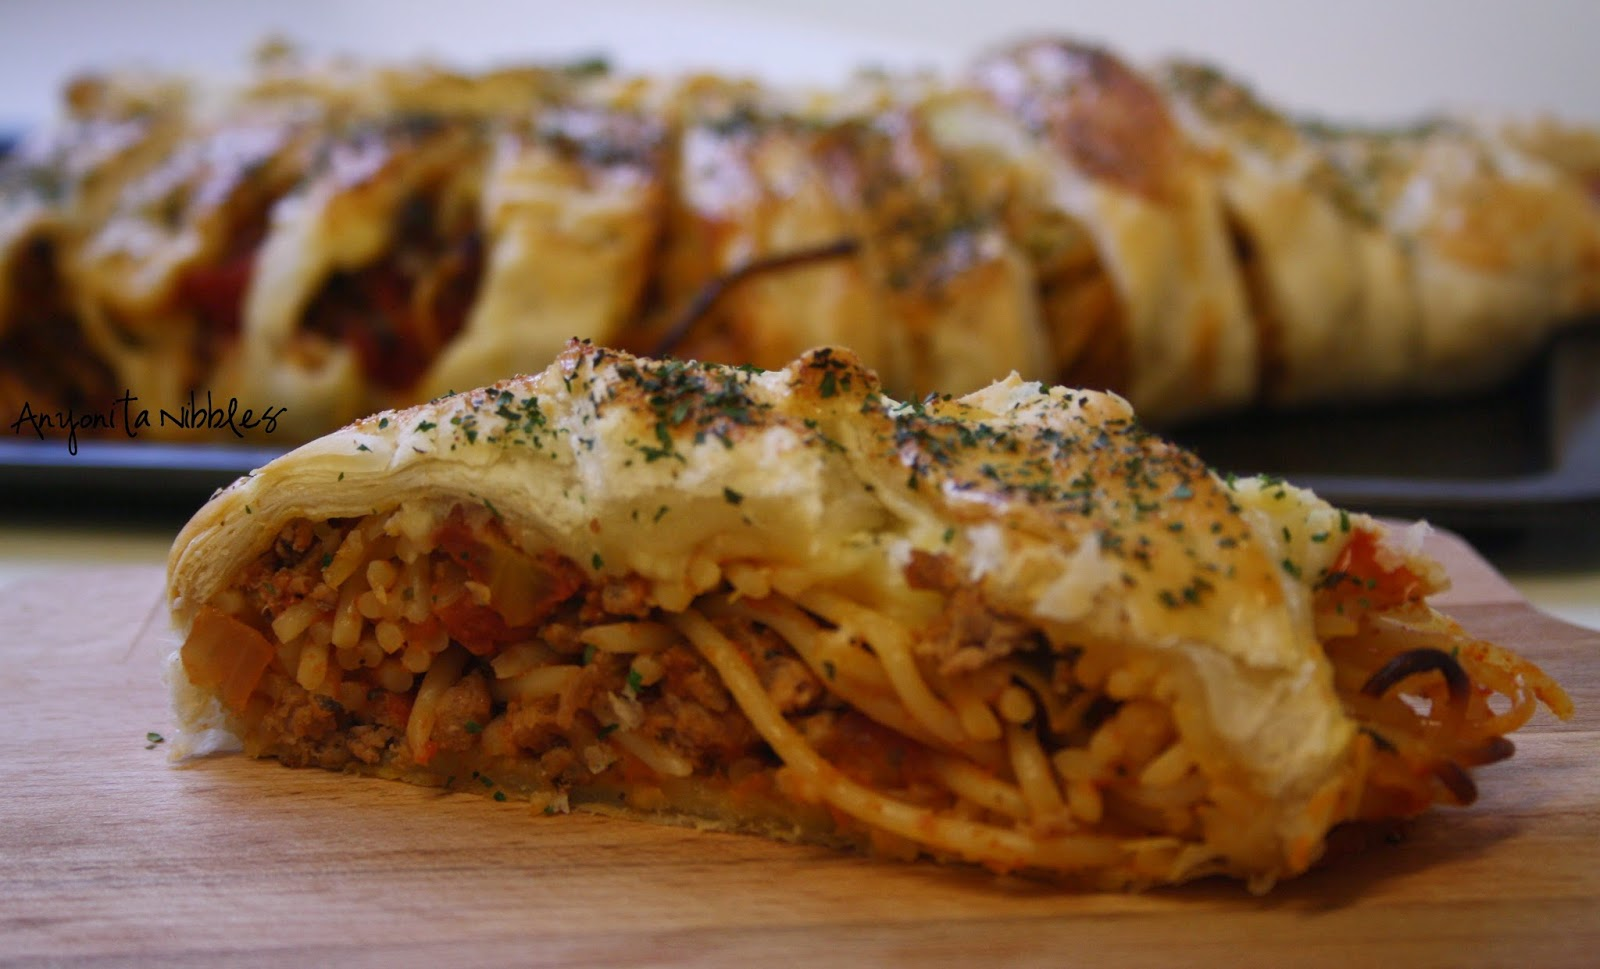 A slice of braided spaghetti loaf | Anyonita Nibbles